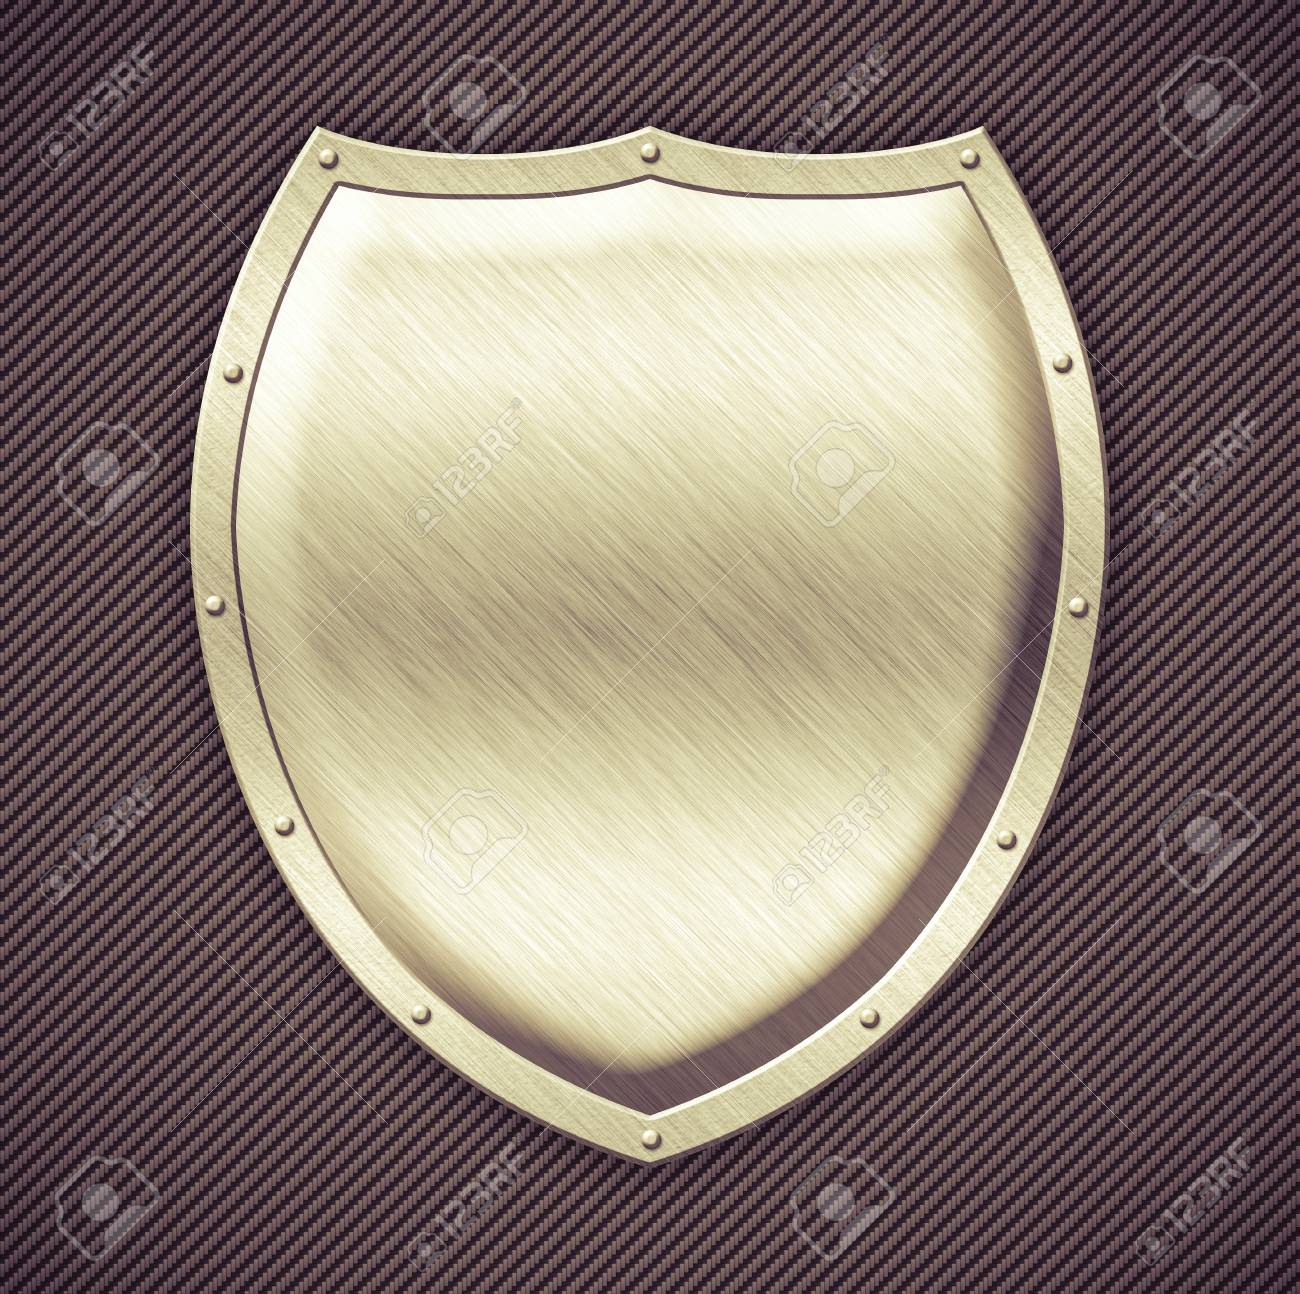 Aged metal shield on carbon background Stock Photo - 18144457